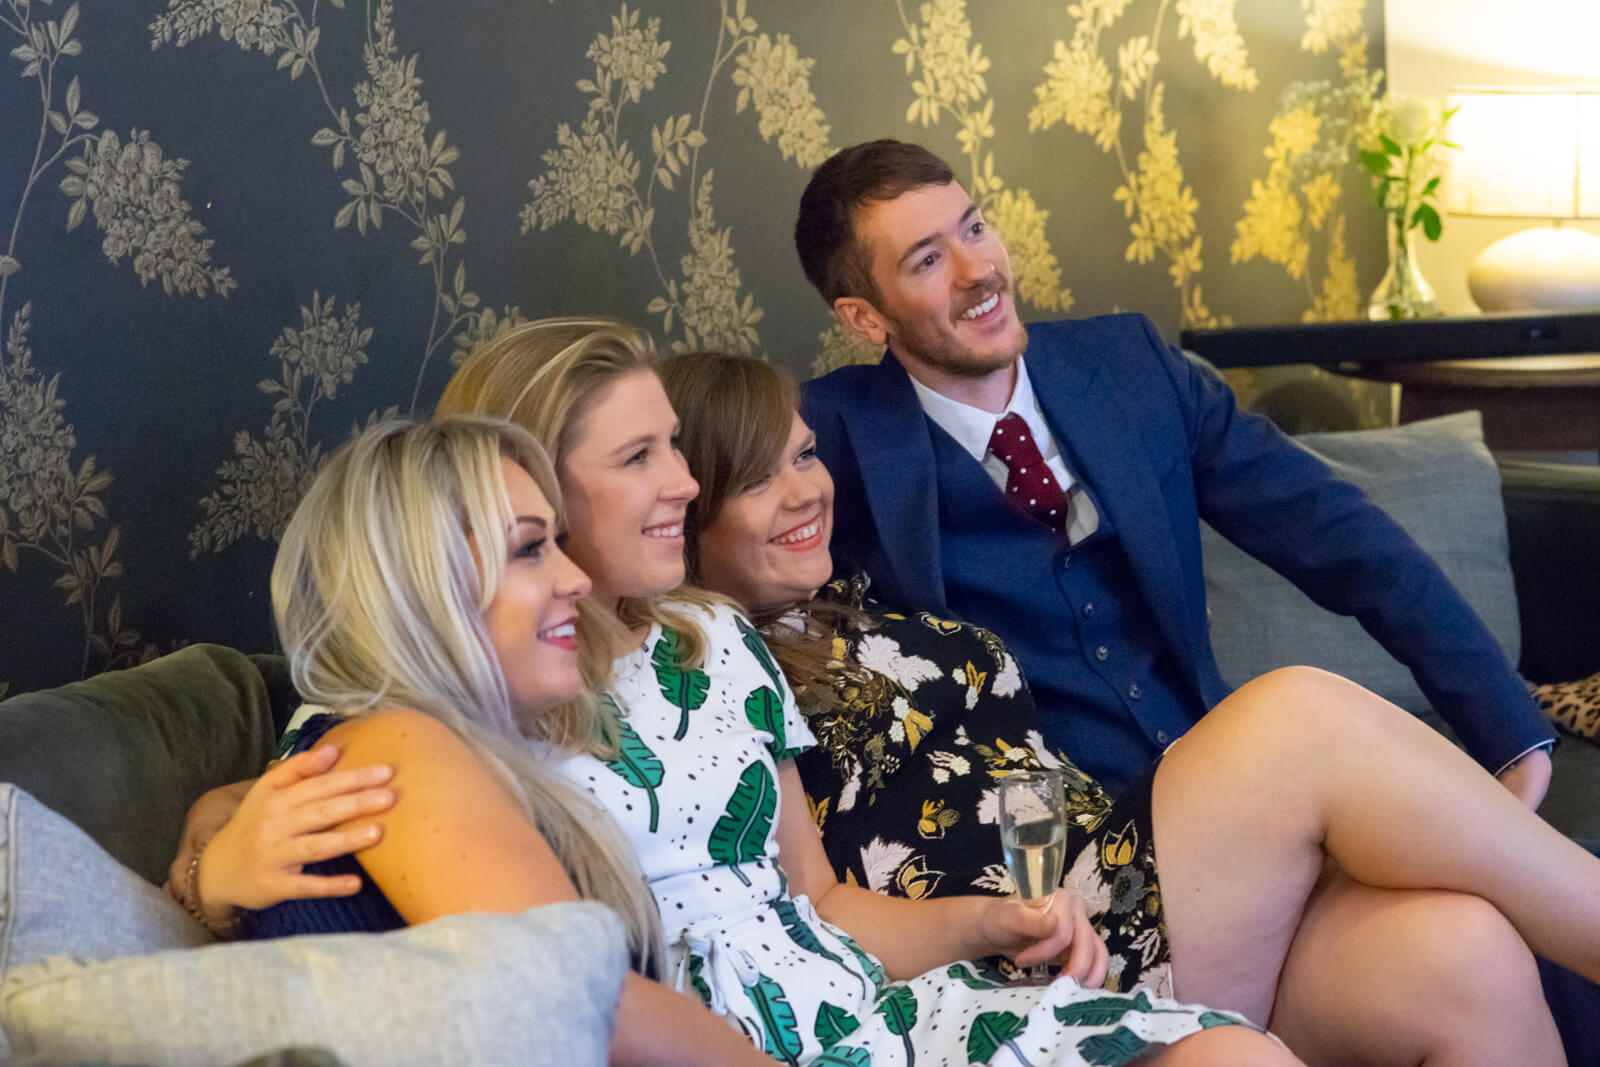 Group of four friends huddle together on a sofa for a photo